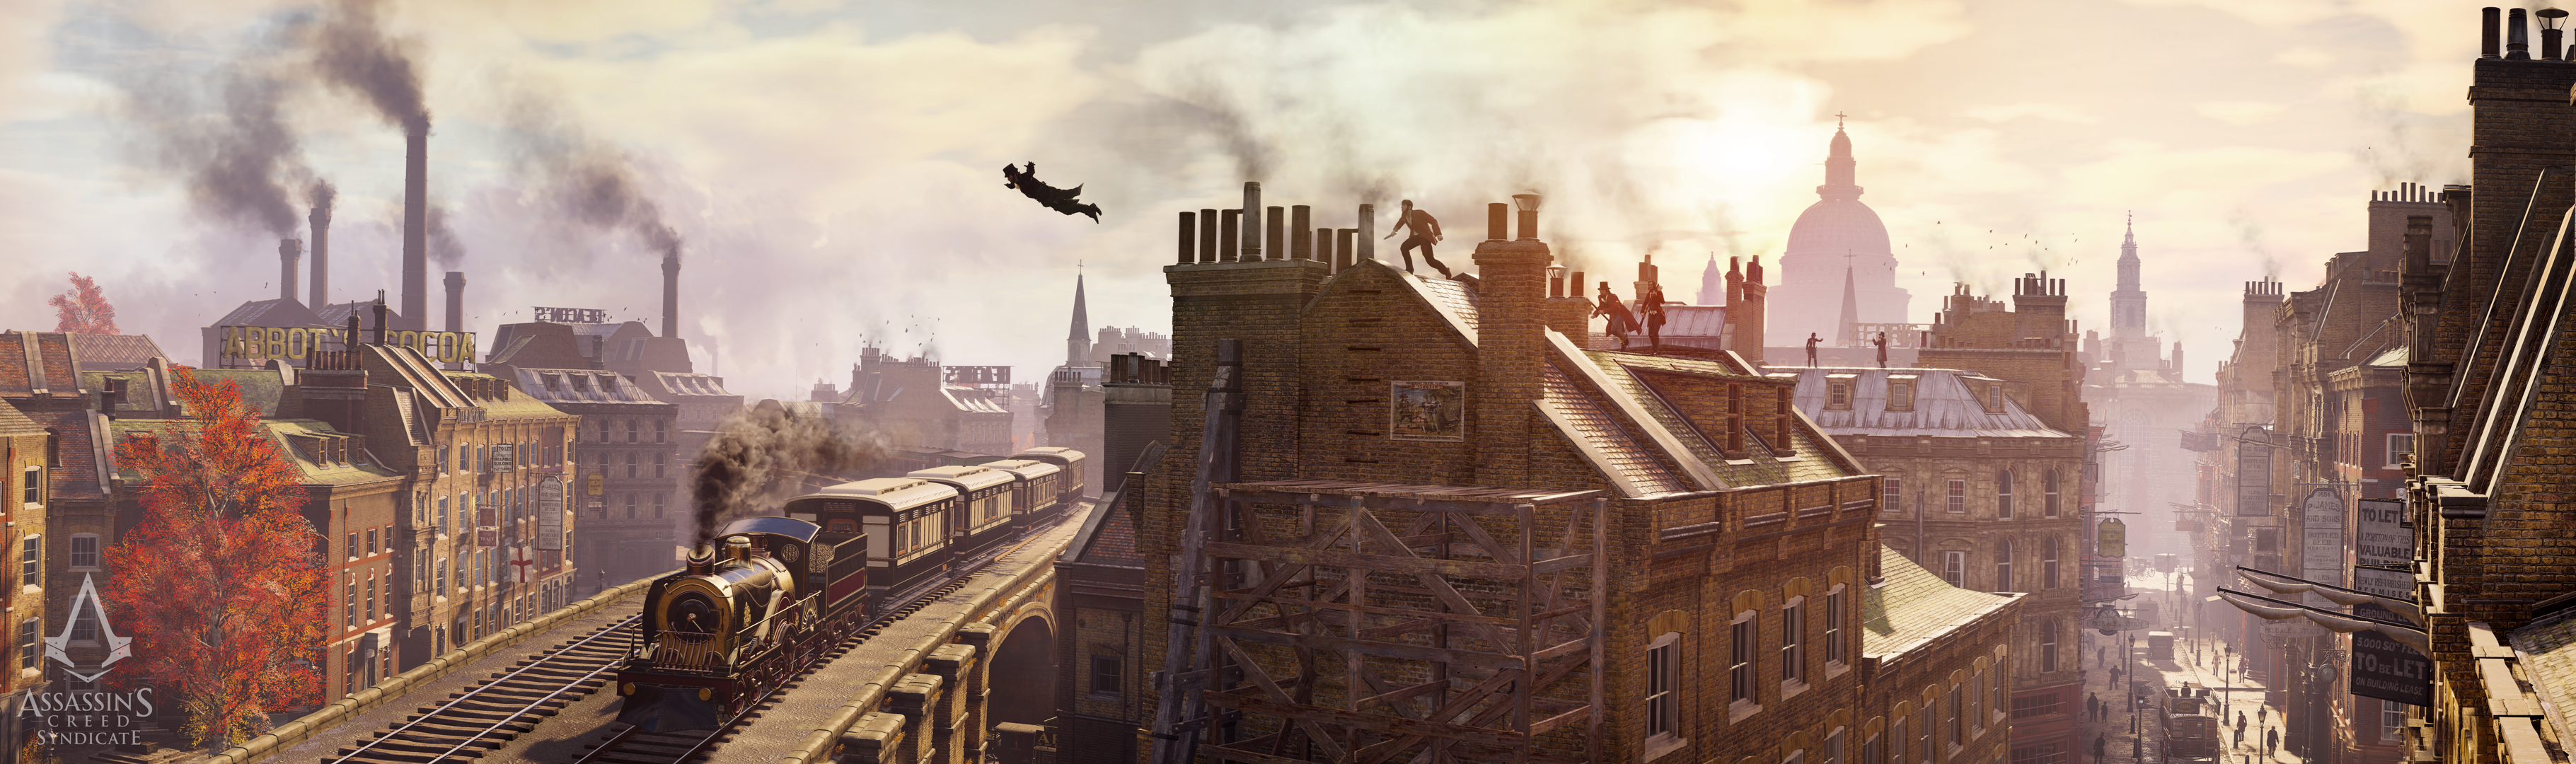 Assassin's Creed Syndicate_E3_Panorama_watermarked_211575